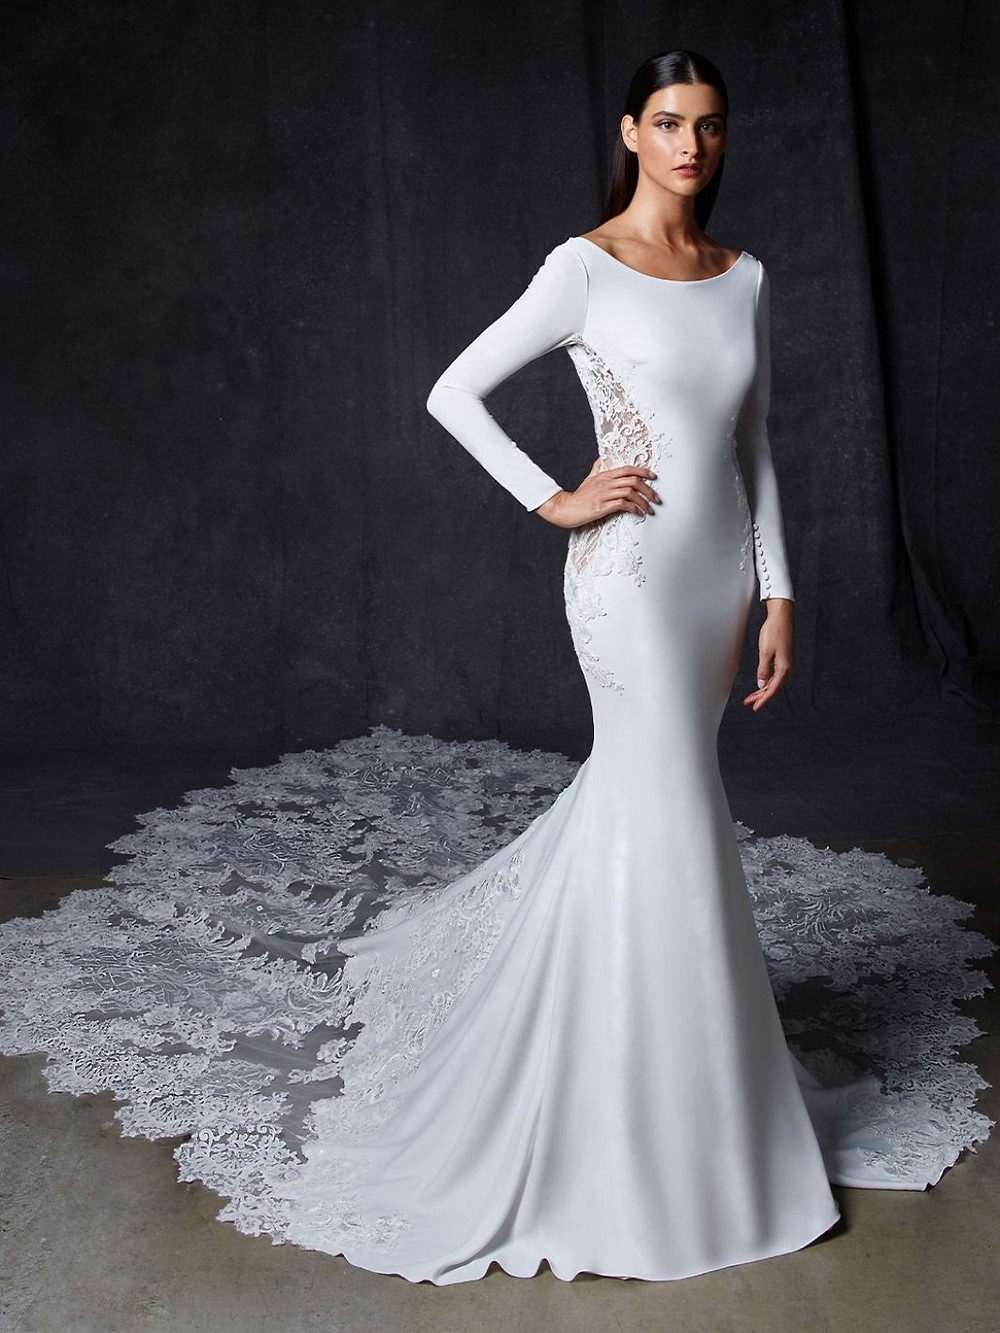 An Enzoani silk, long sleeve mermaid wedding dress with lace and a long train